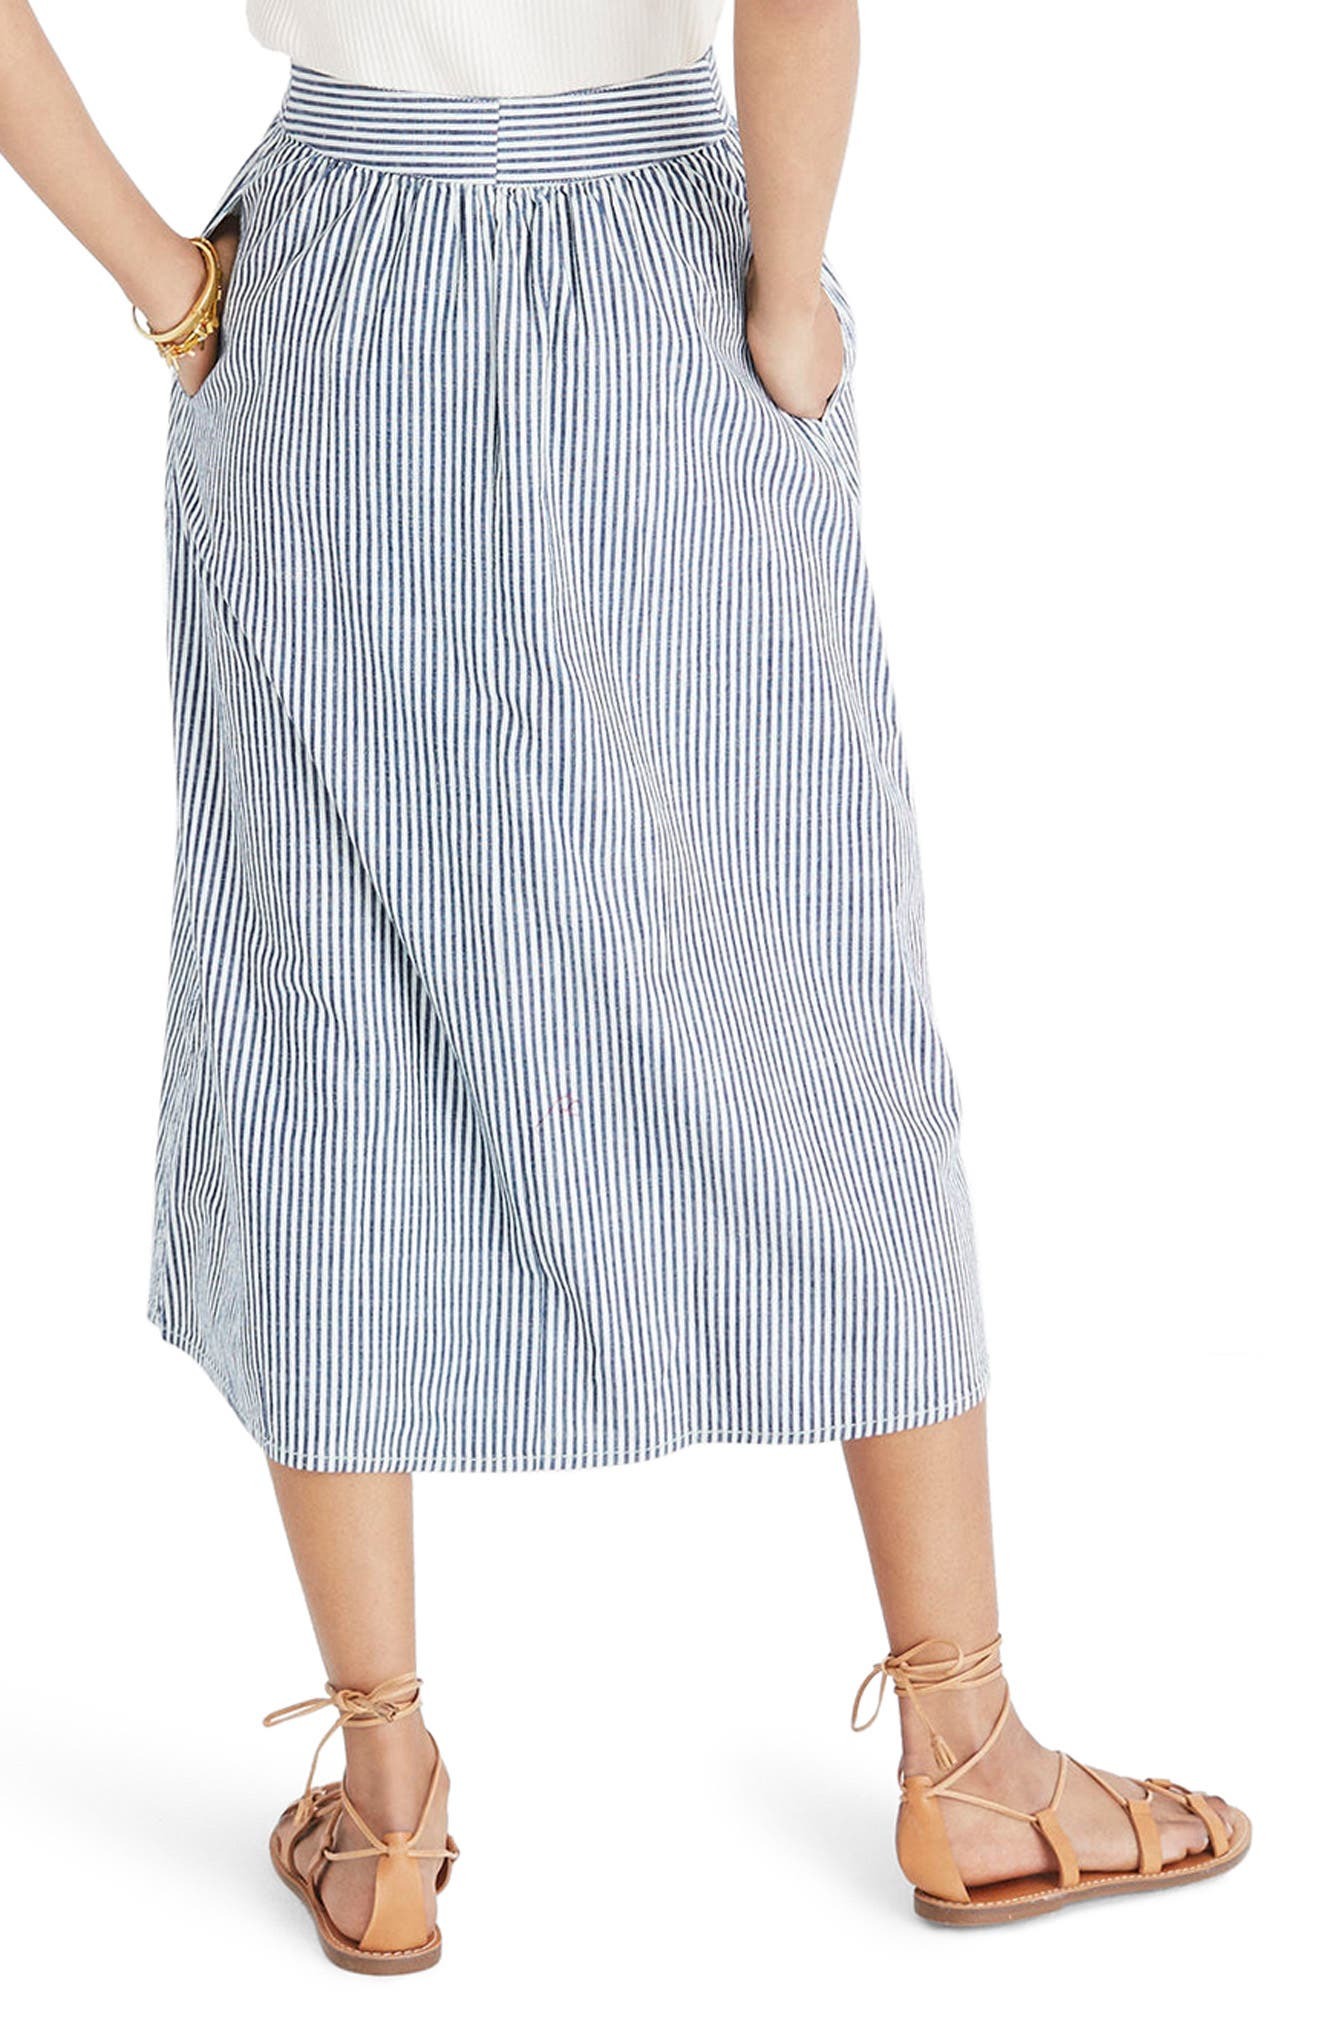 Palisade Chambray Stripe Button Front Midi Skirt,                             Alternate thumbnail 2, color,                             400